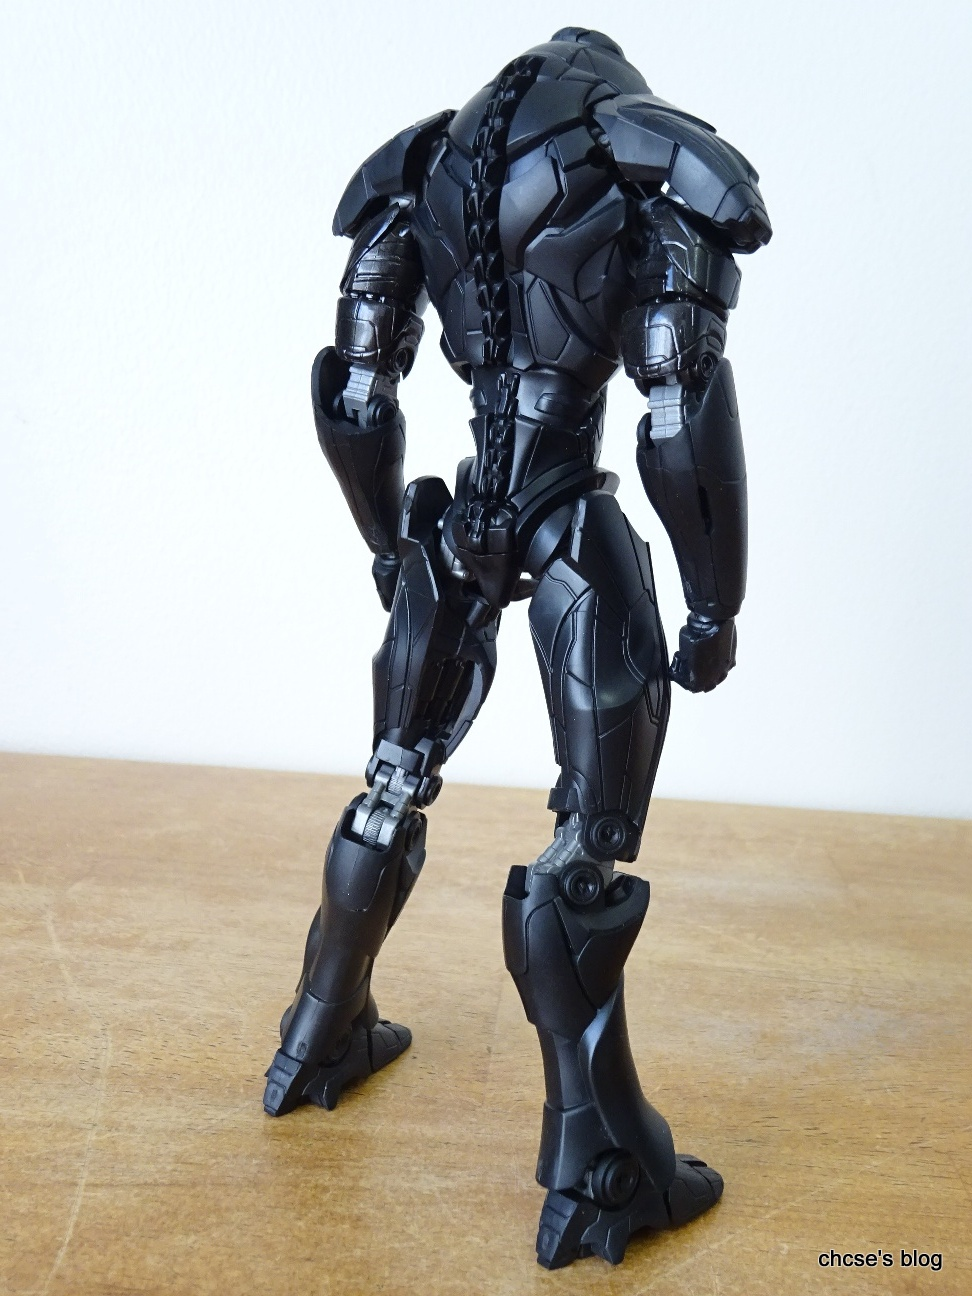 ChCse's blog: Toy Review: Robot Damashii Obsidian Fury